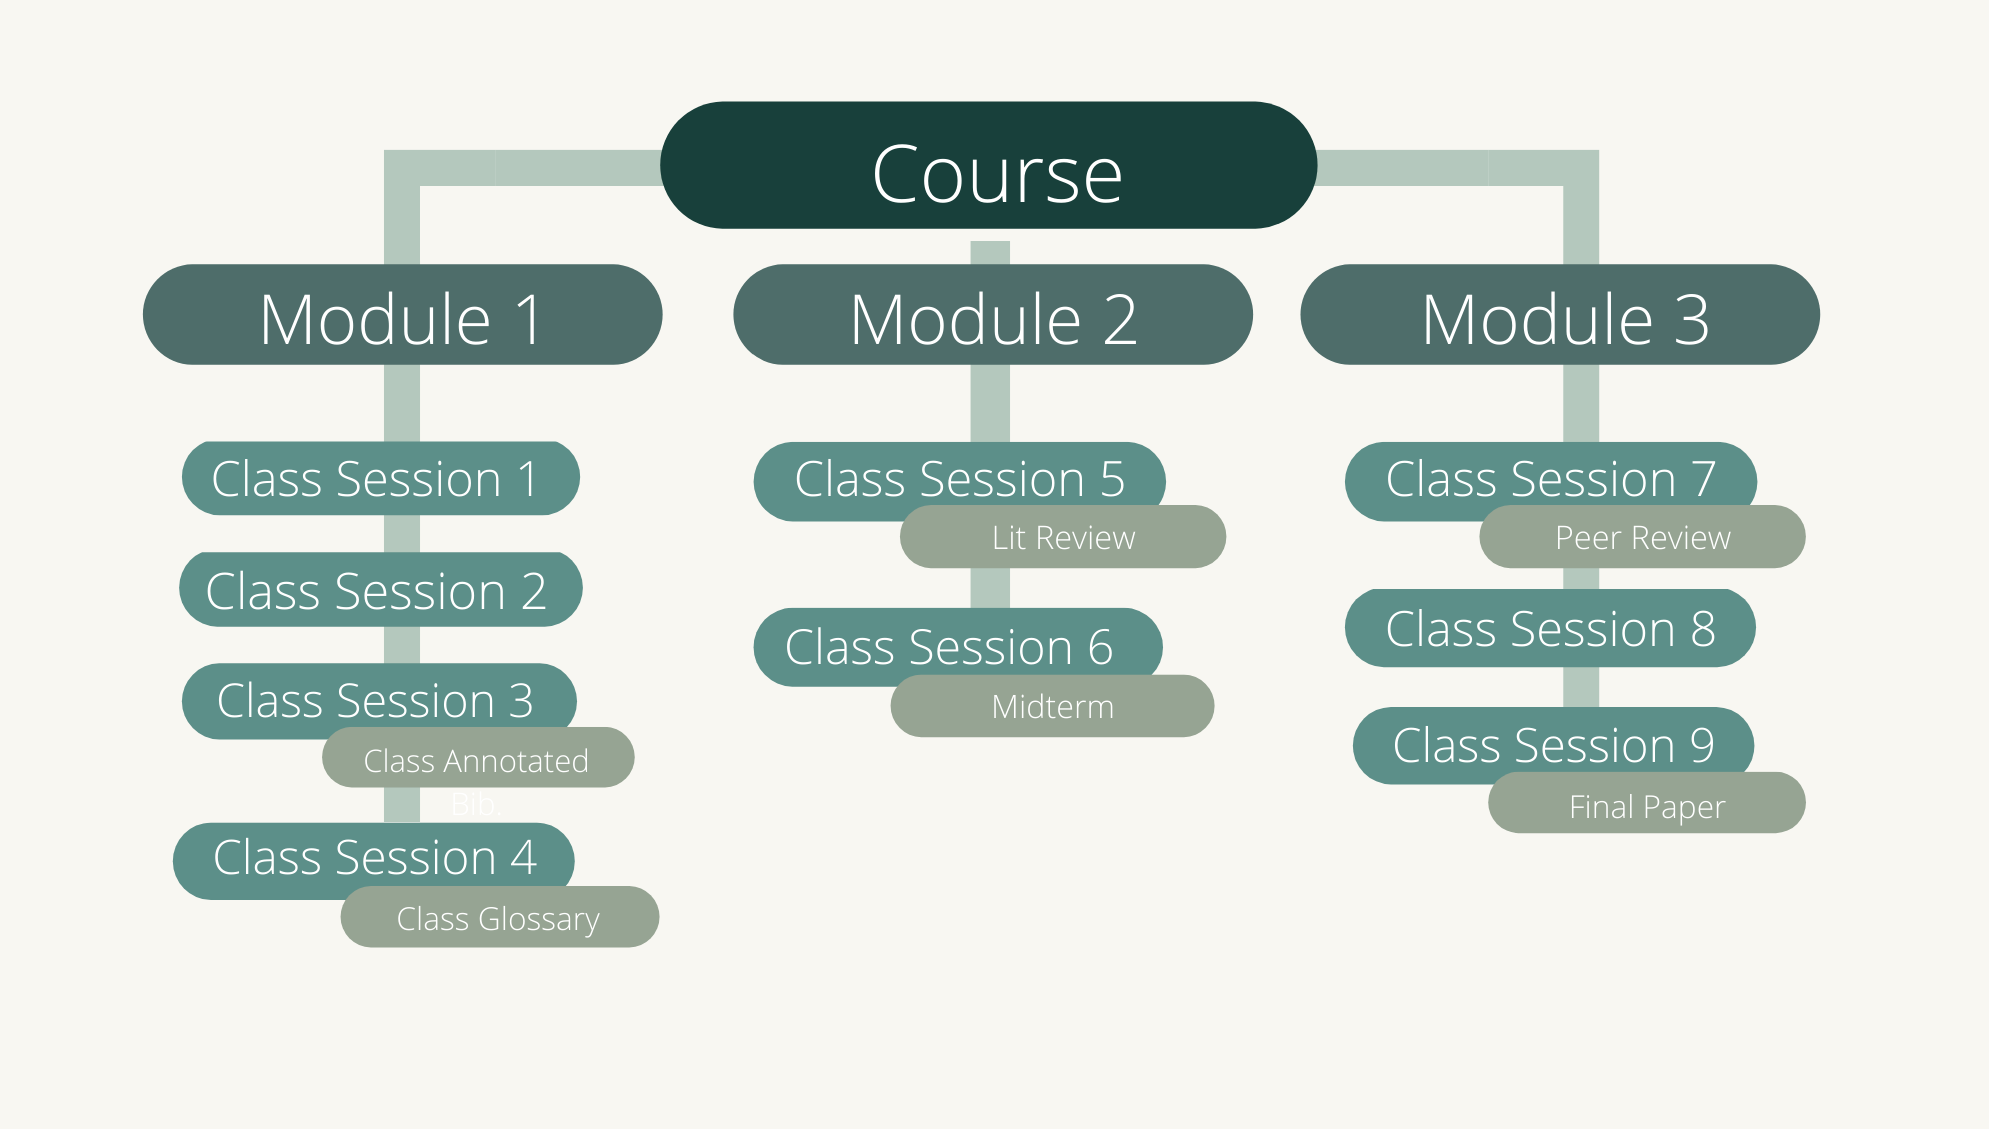 One course that branches out to 3 modules. Each module branches out to several class sessions.